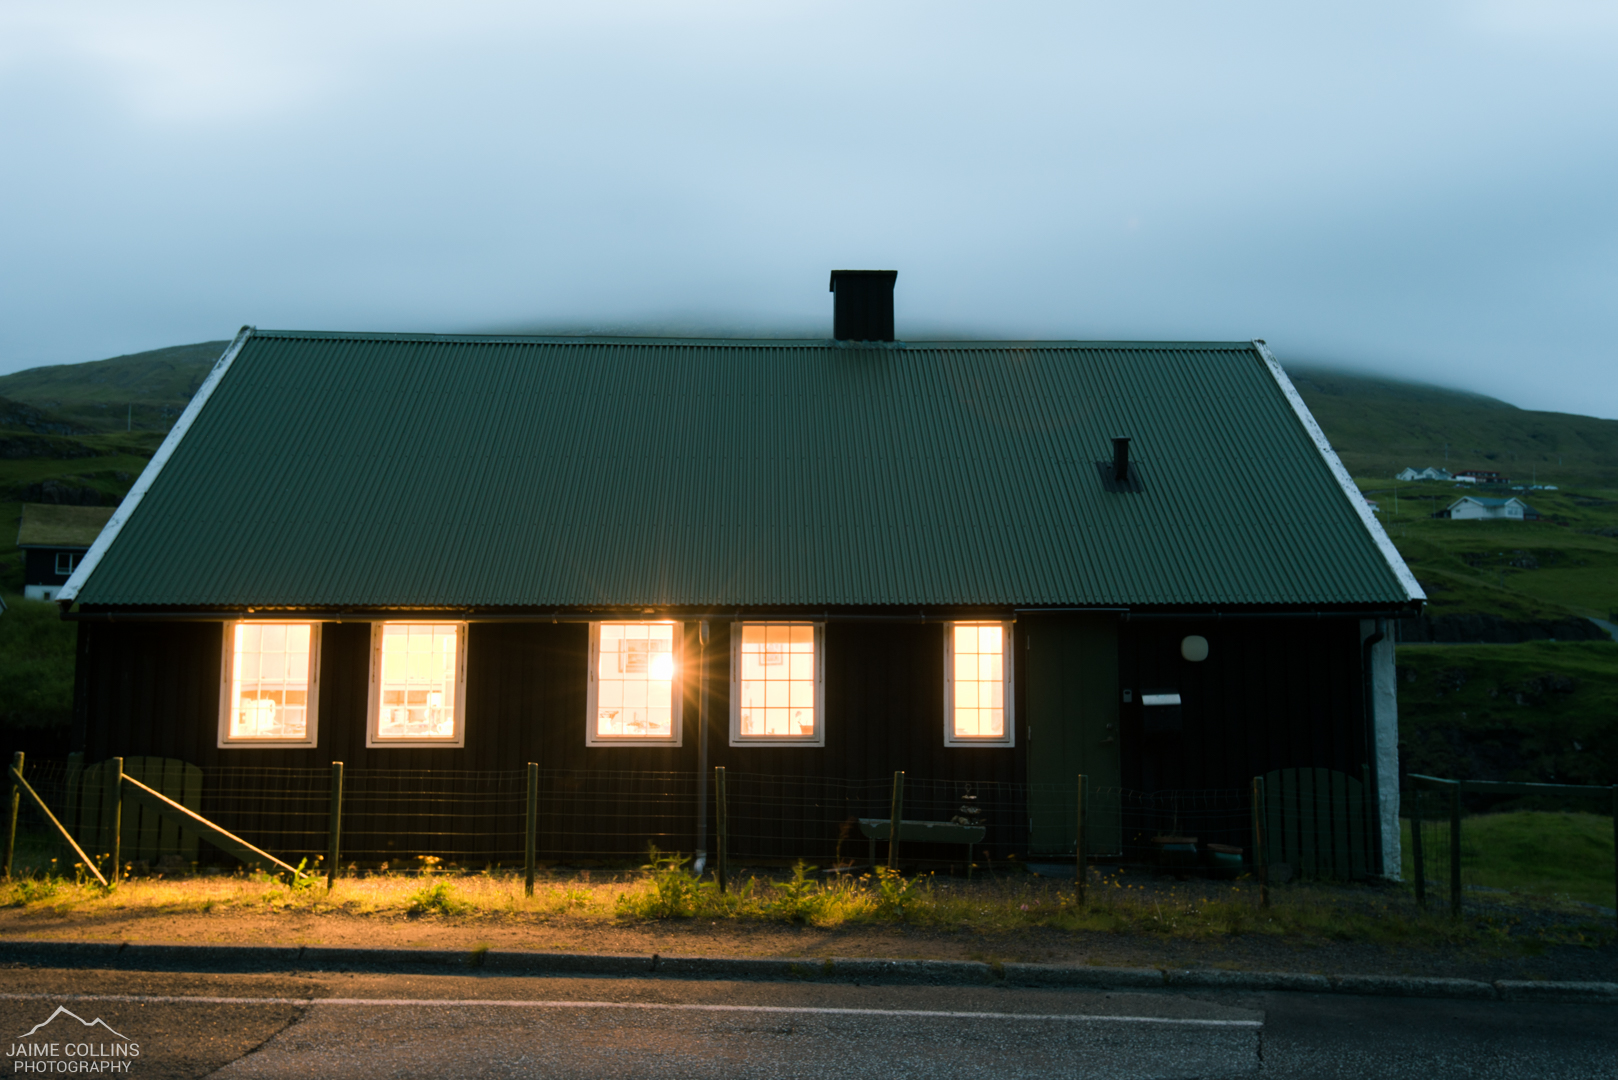 Our accommodation for the trip — a beautiful Faroese house. Shame it didn't have a grass roof!